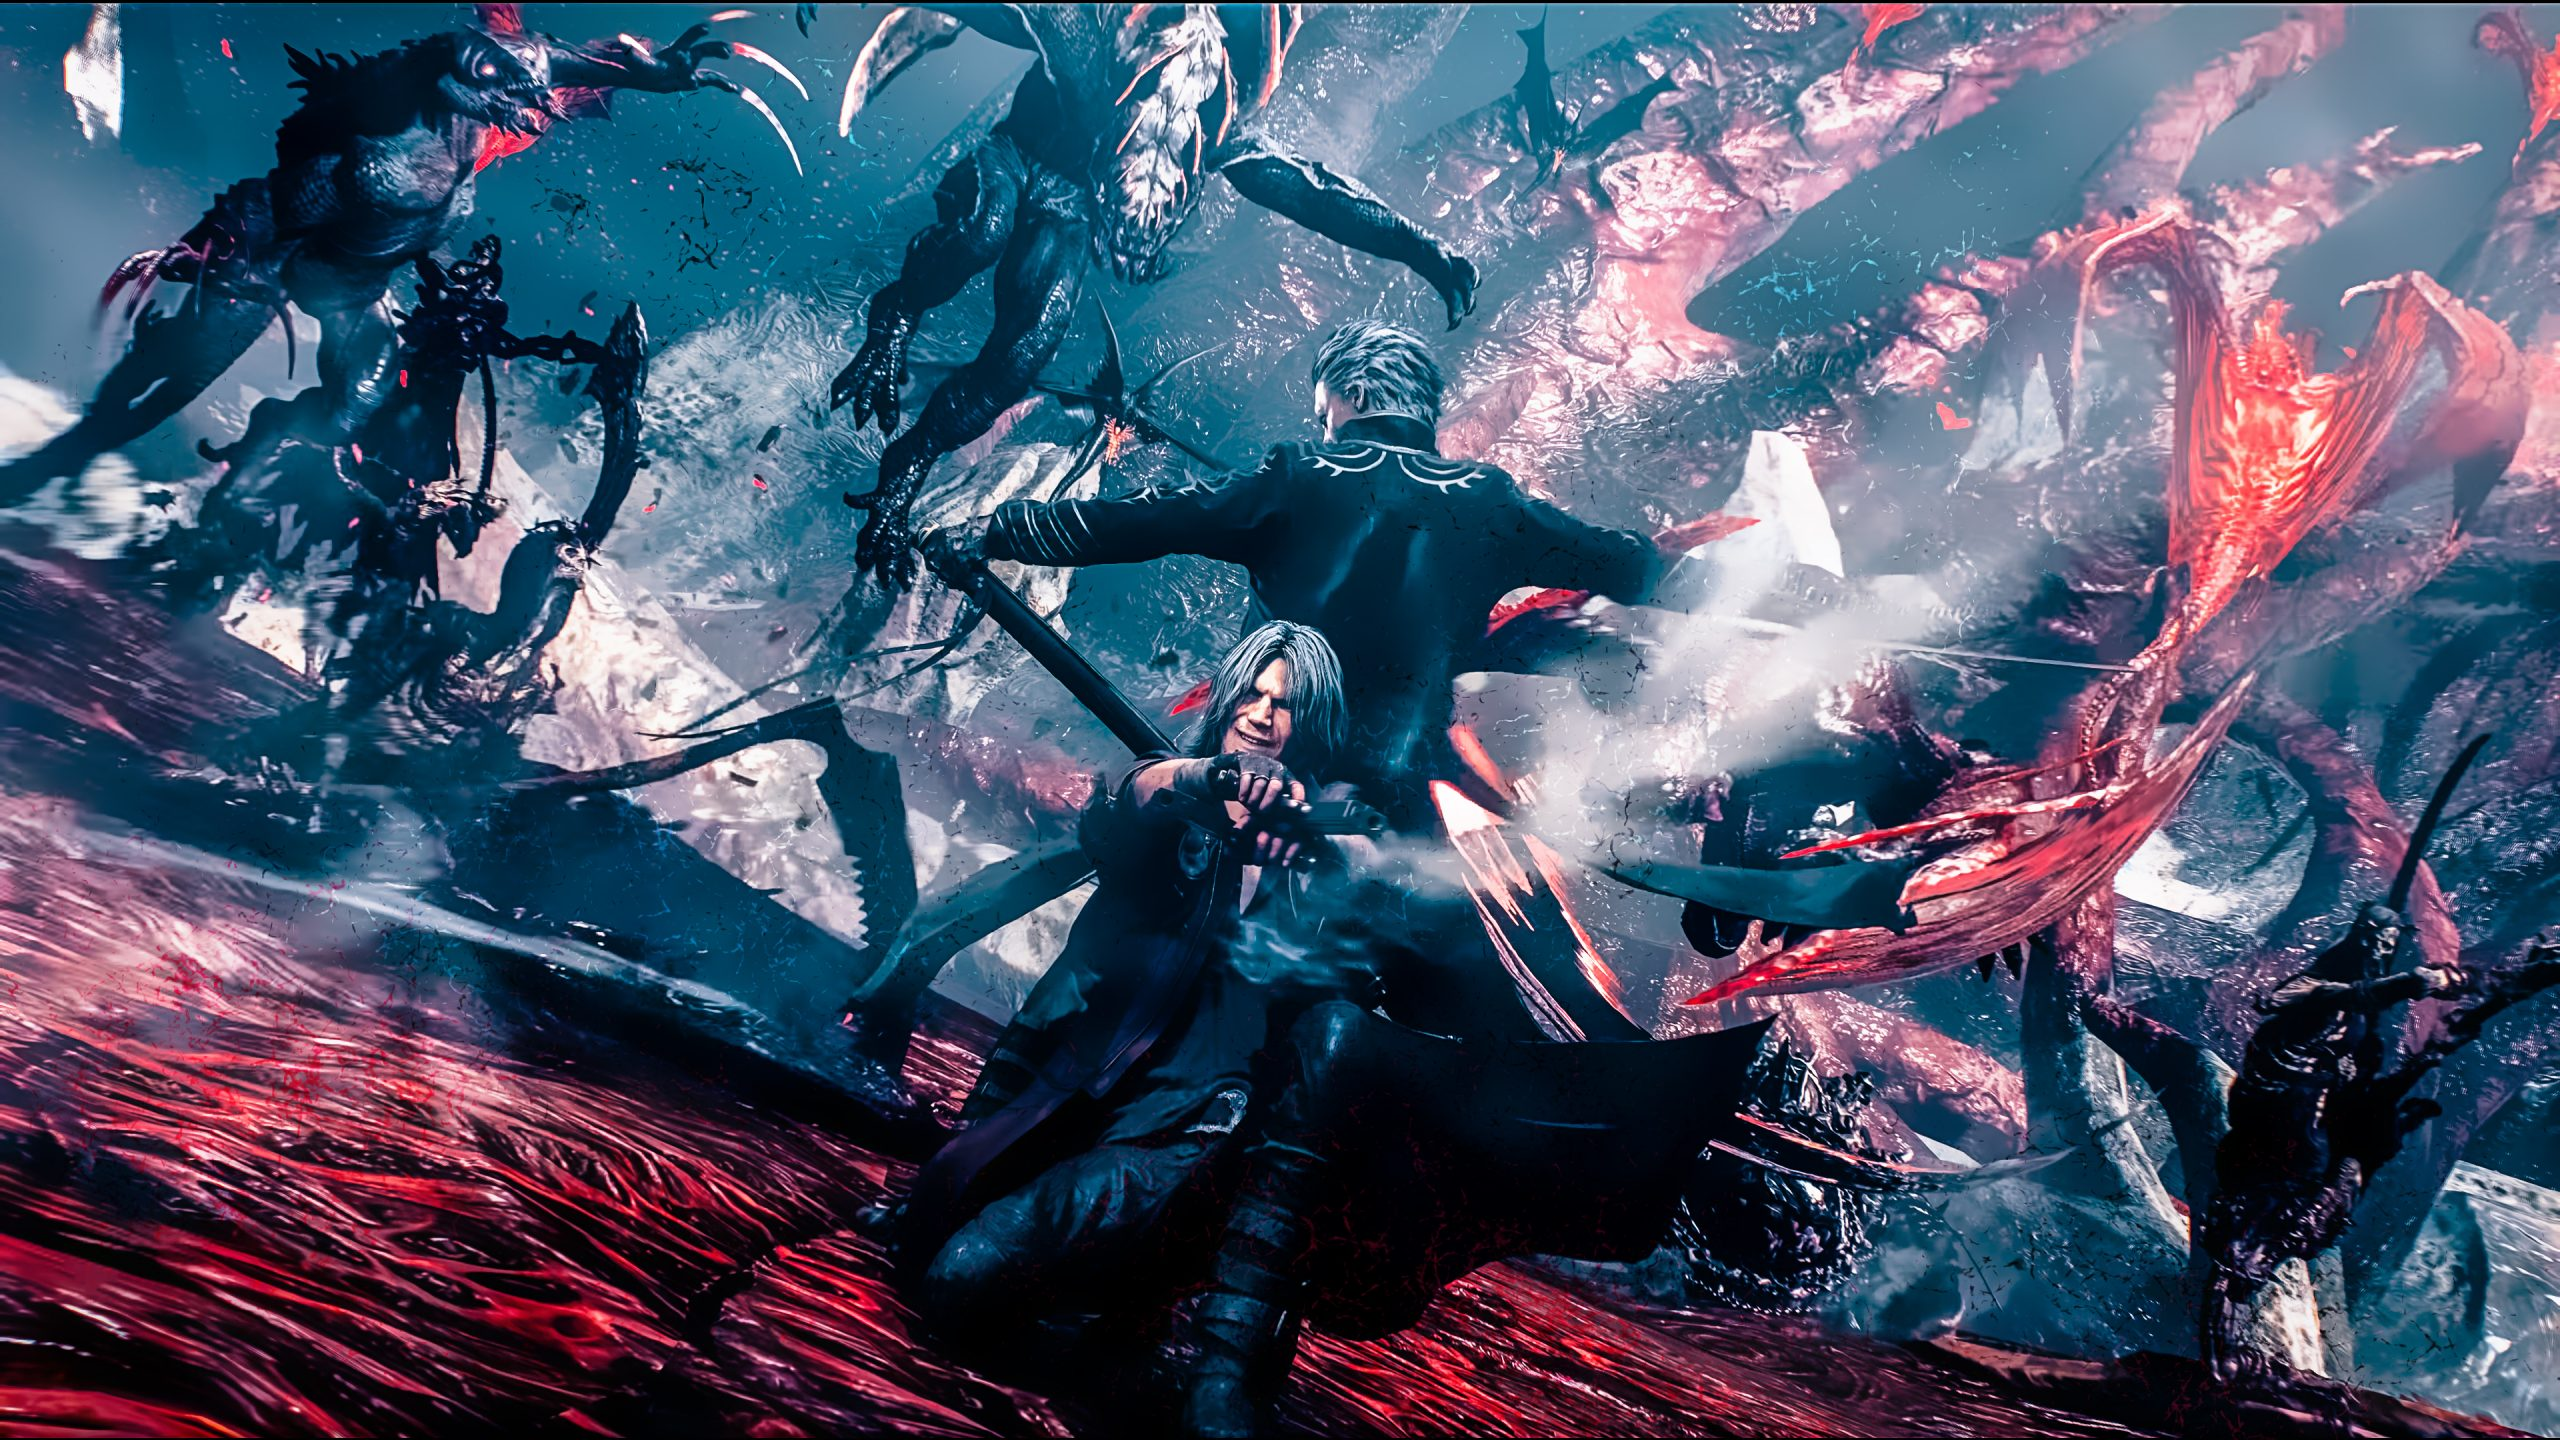 DMC 5 final borthers 4K Wallpaper